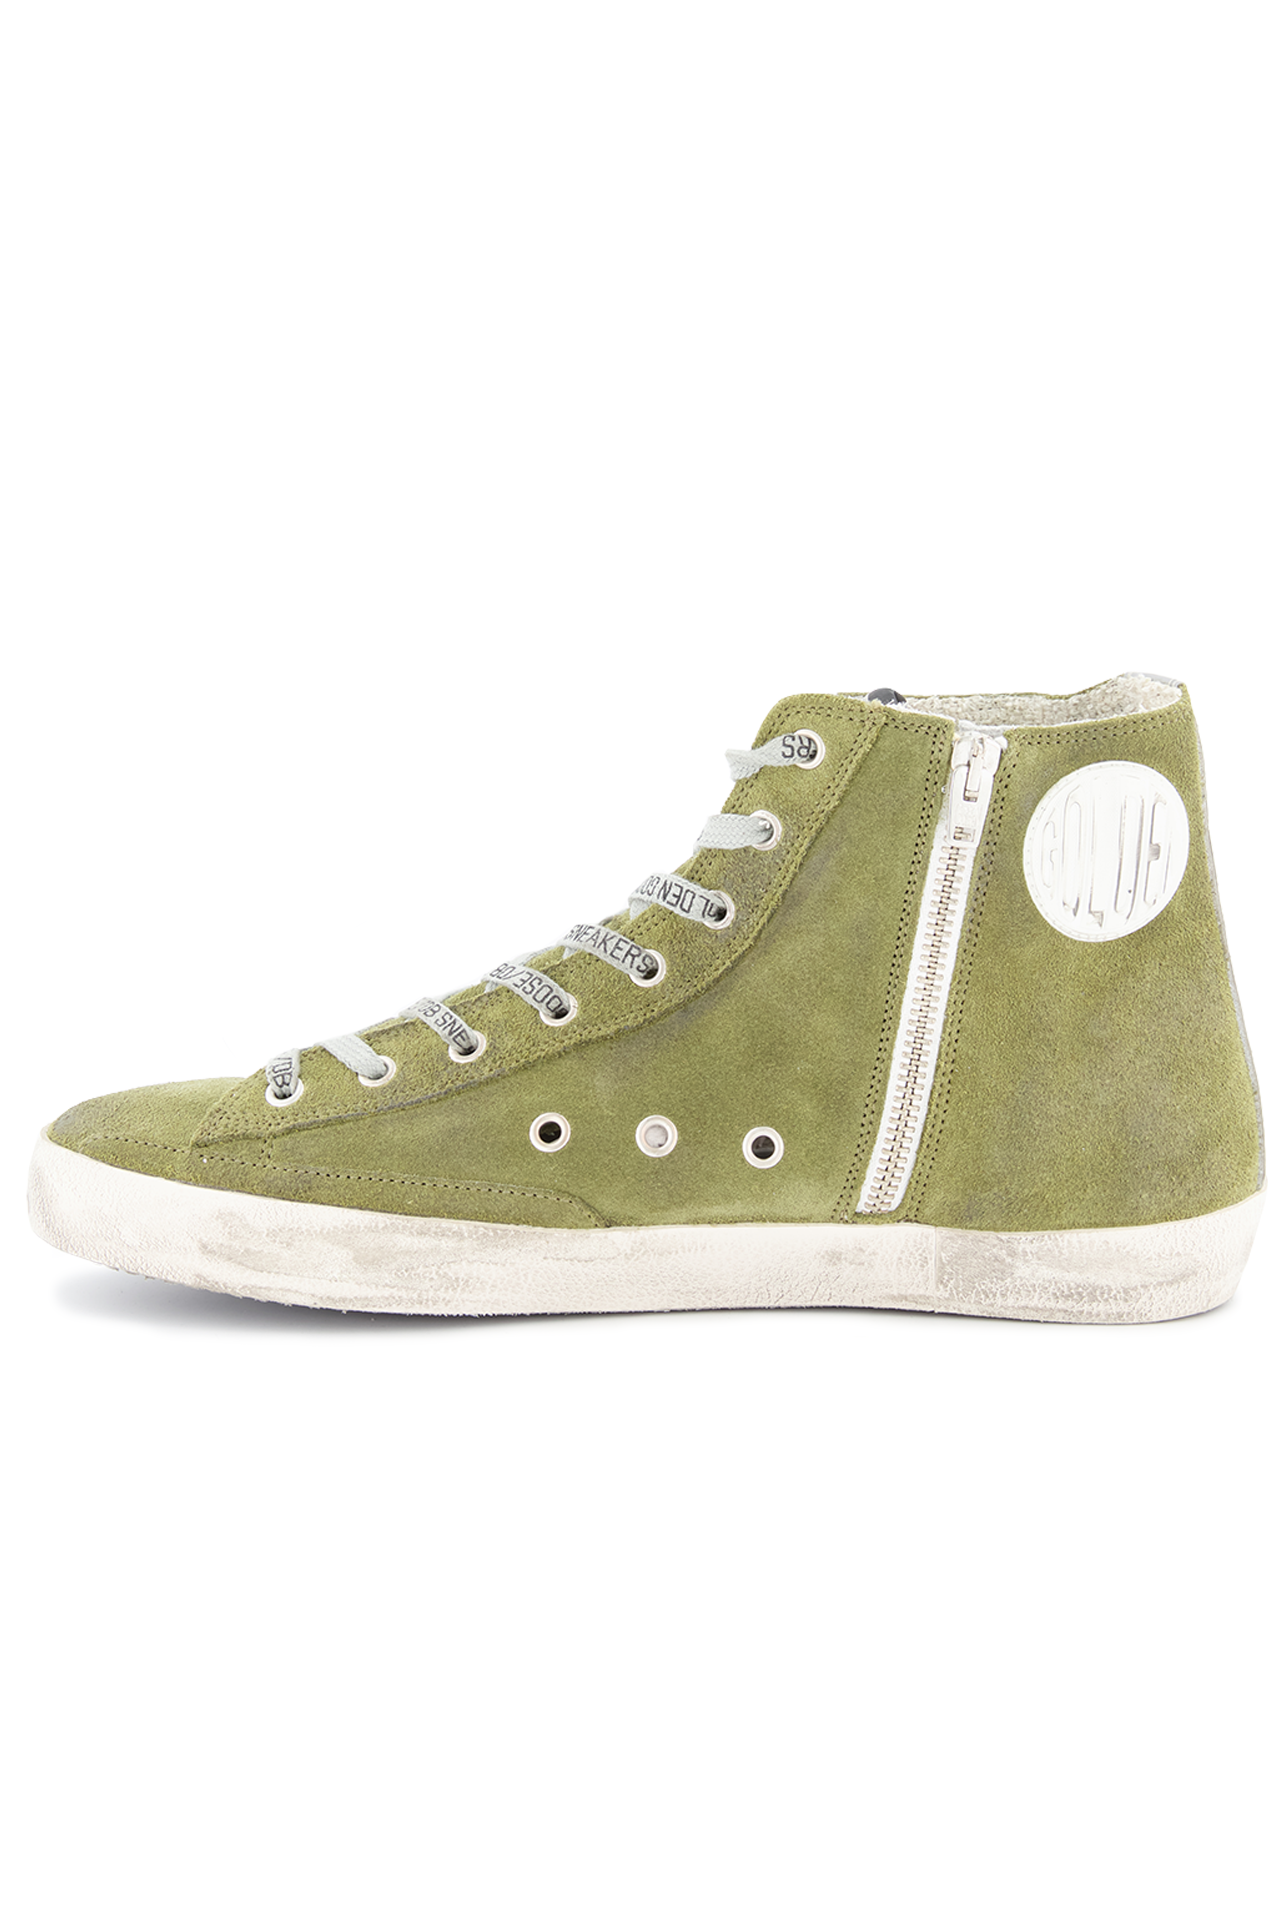 Instep side view image of Golden Goose Men's Francy High Top Sneaker Military Green